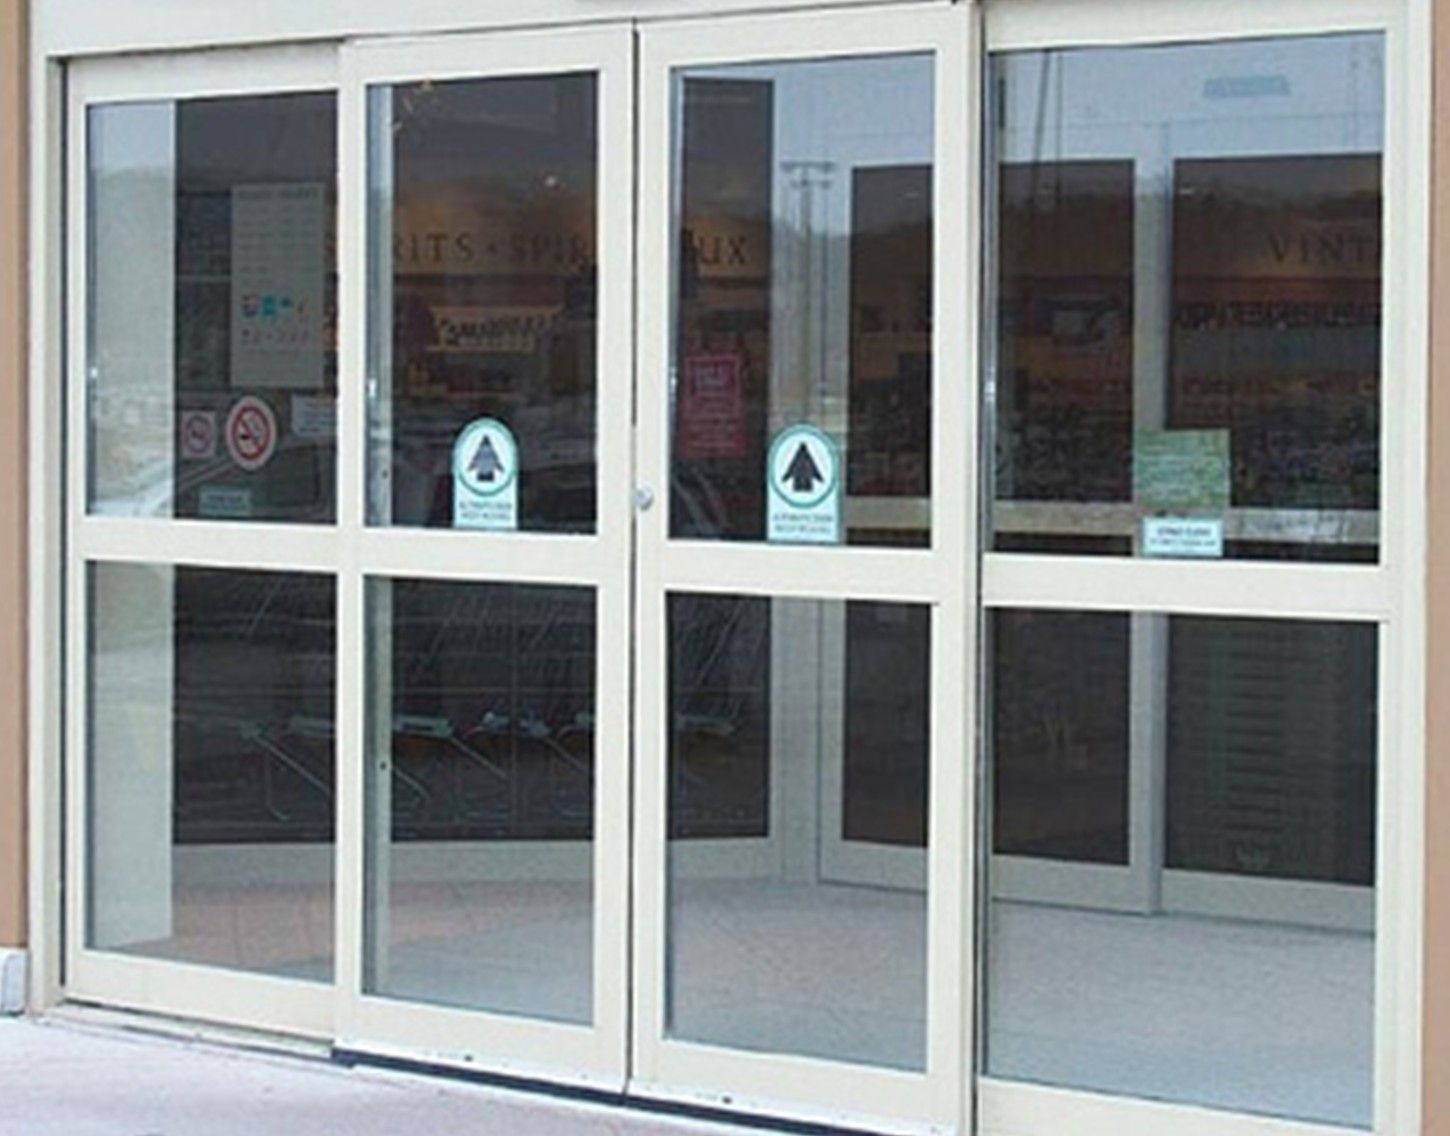 Sliding Door Operators Are Typically Used On The Outside Doors Of Large Retail Businesses Smaller Business Use Automatic That Controlled By A